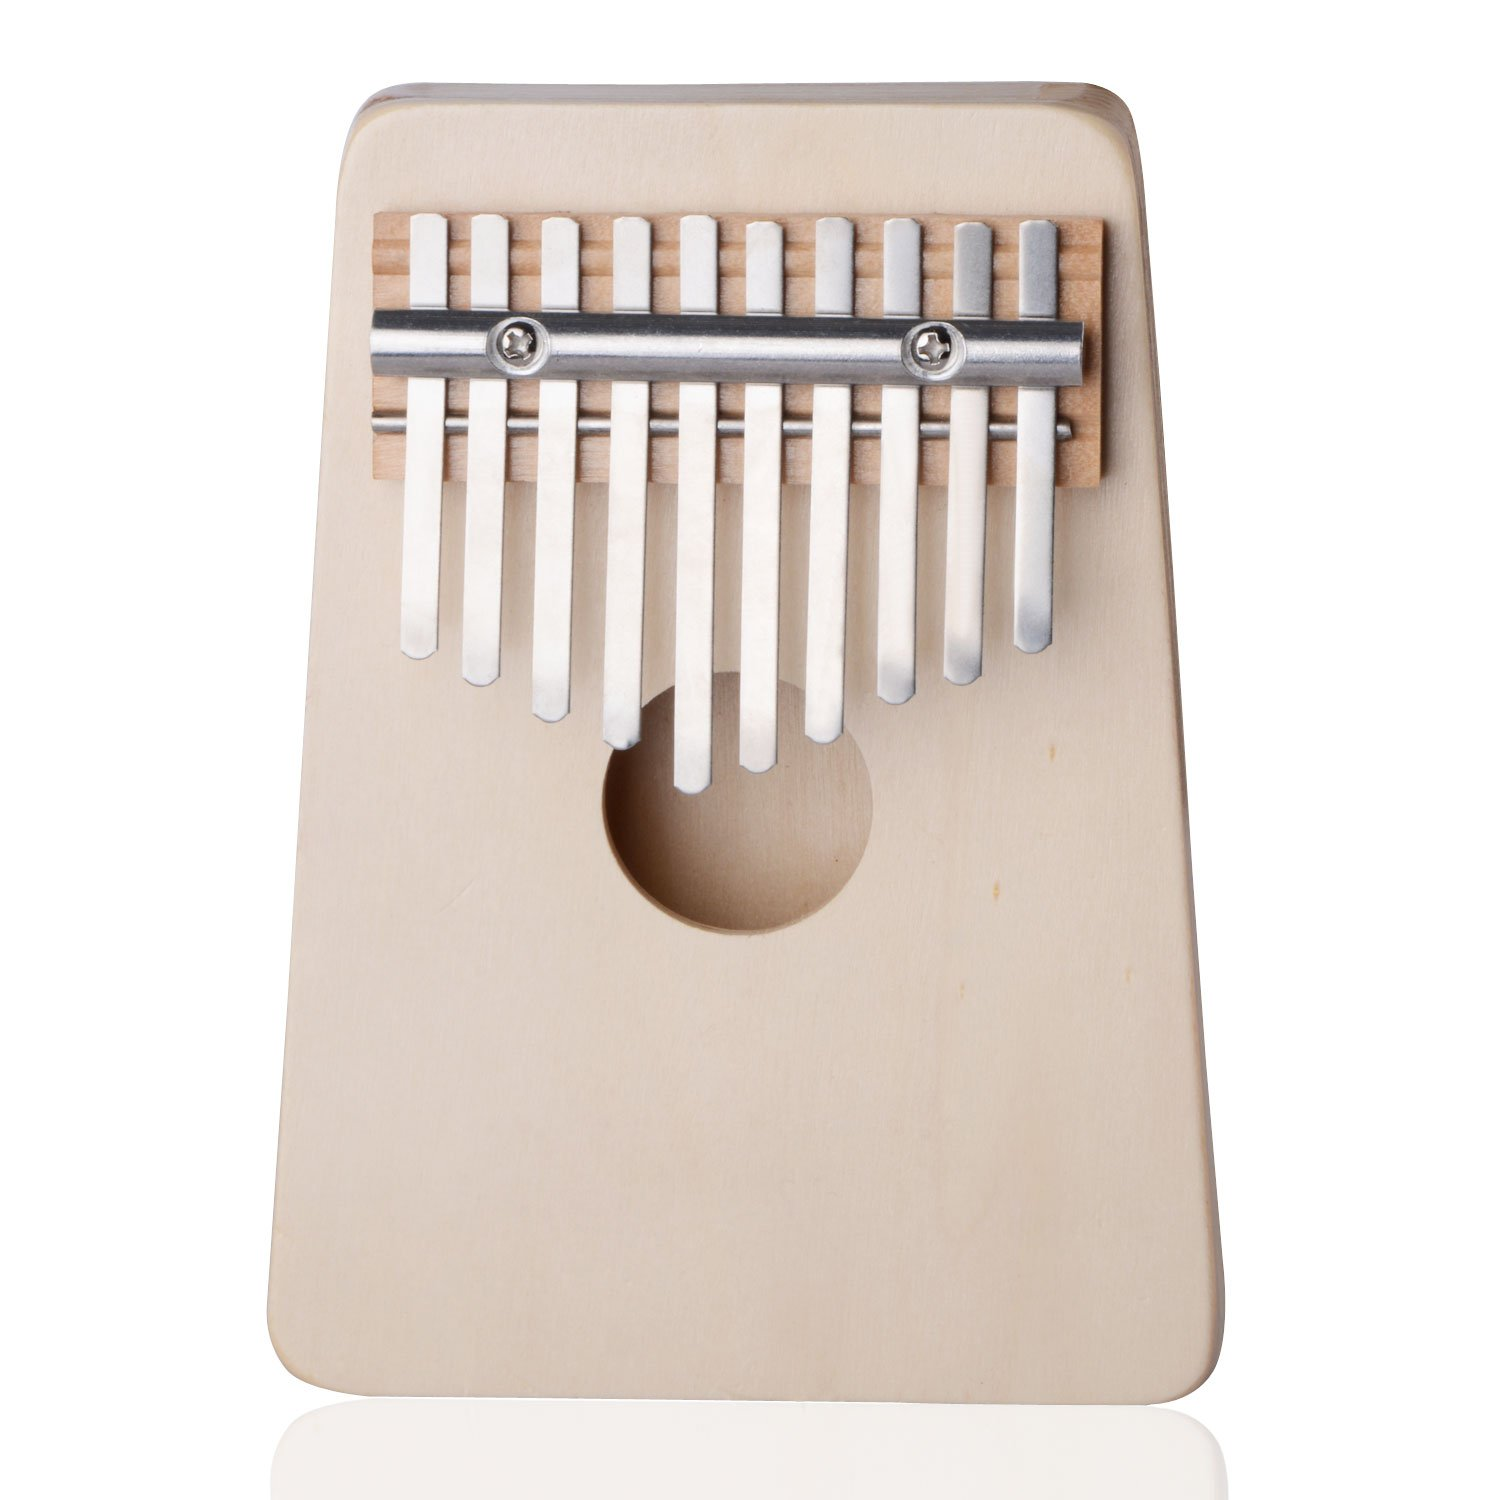 Thumb Piano,10 Key Finger Piano Kalimba Mbira Thumb Piano for Music Lover and Beginner (Spruce white)